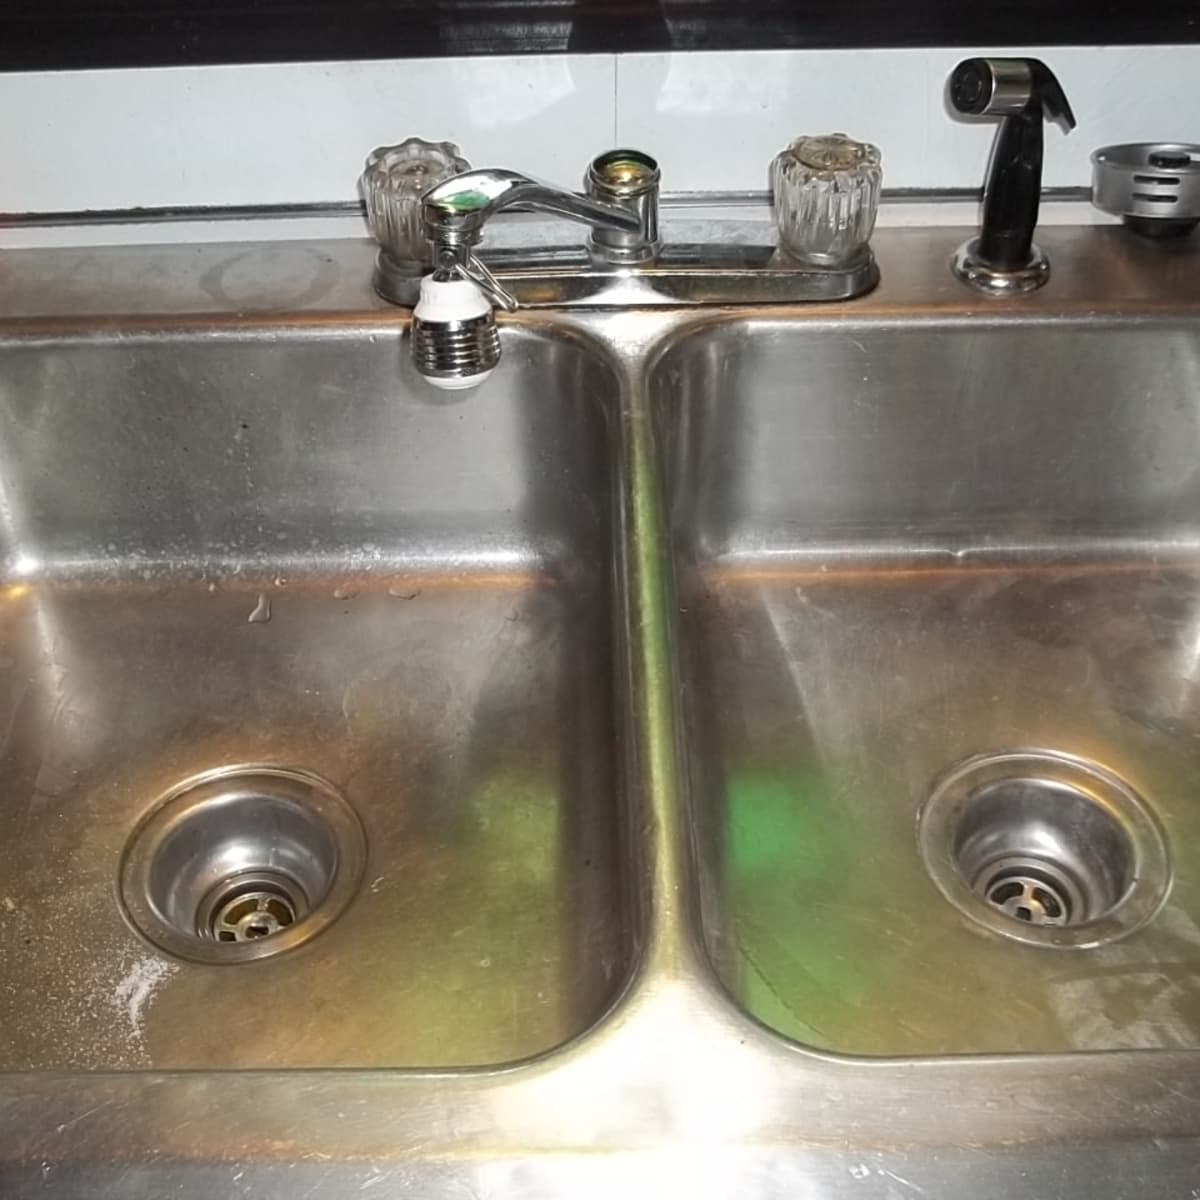 How To Unclog A Double Kitchen Sink Drain Dengarden Home And Garden